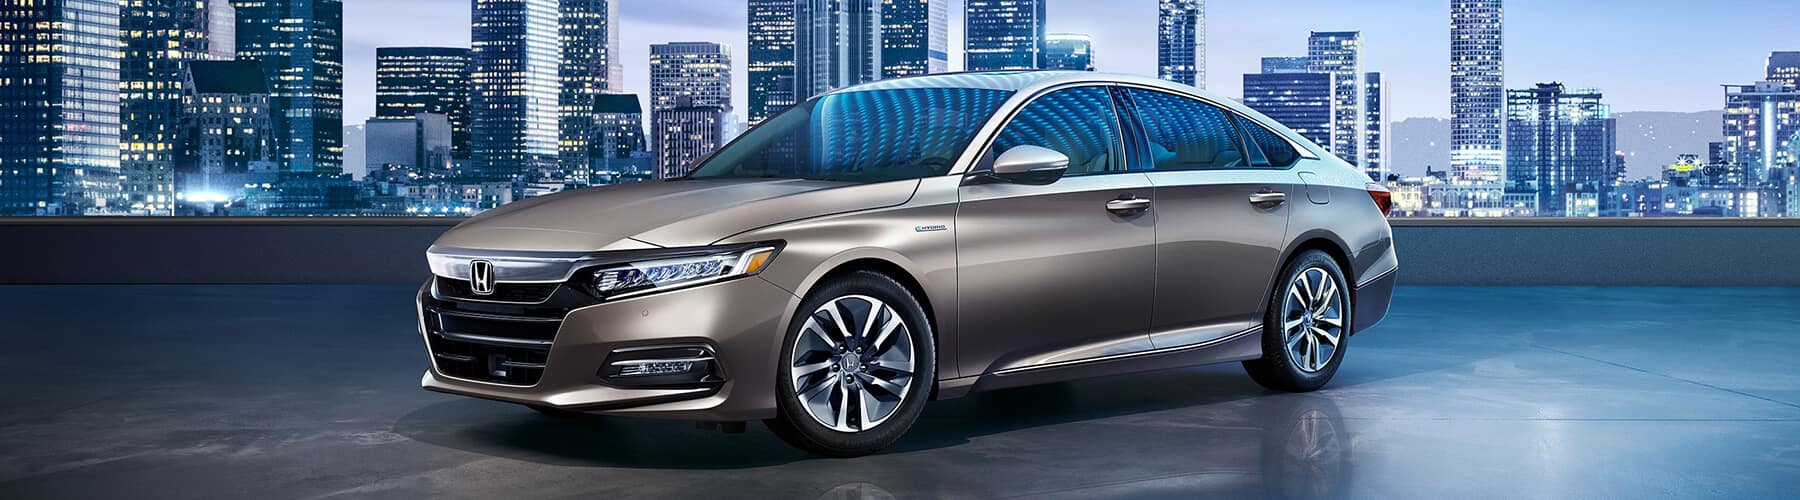 2019 Honda Accord Hybrid Slider